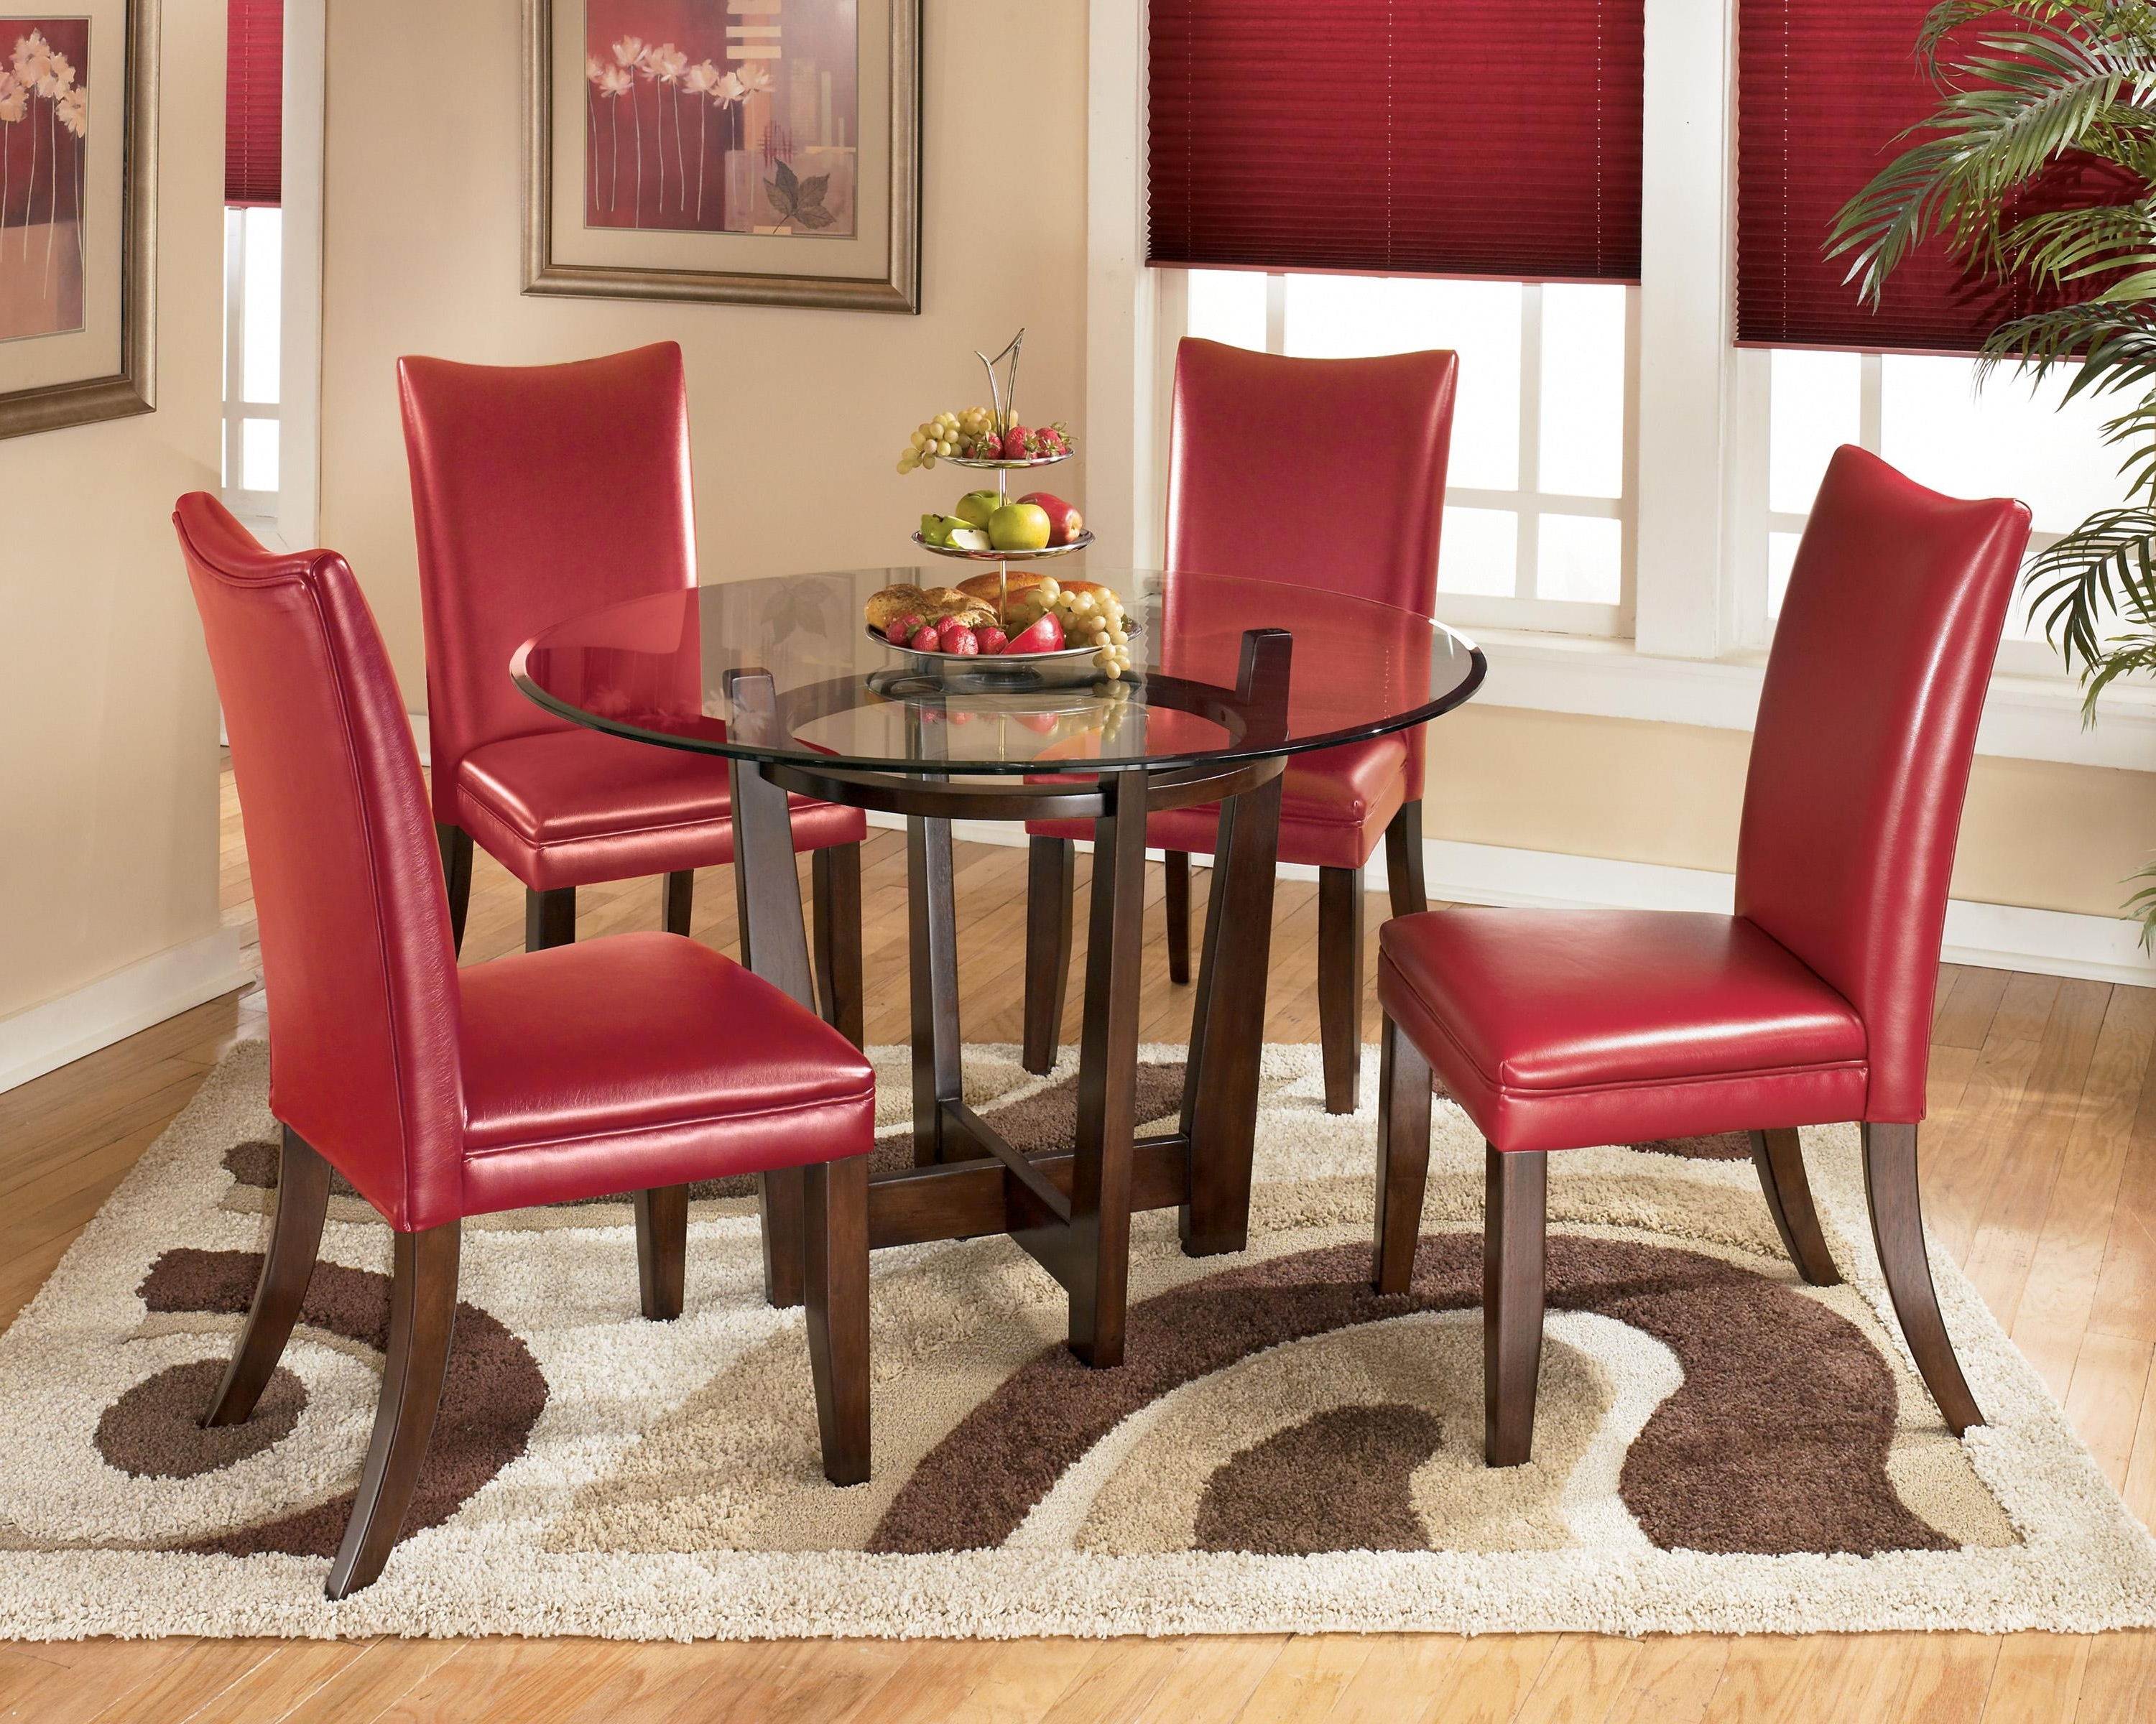 Red Dining Table Sets Throughout Widely Used 5 Piece Round Dining Table Set With Red Chairssignature Design (View 19 of 25)